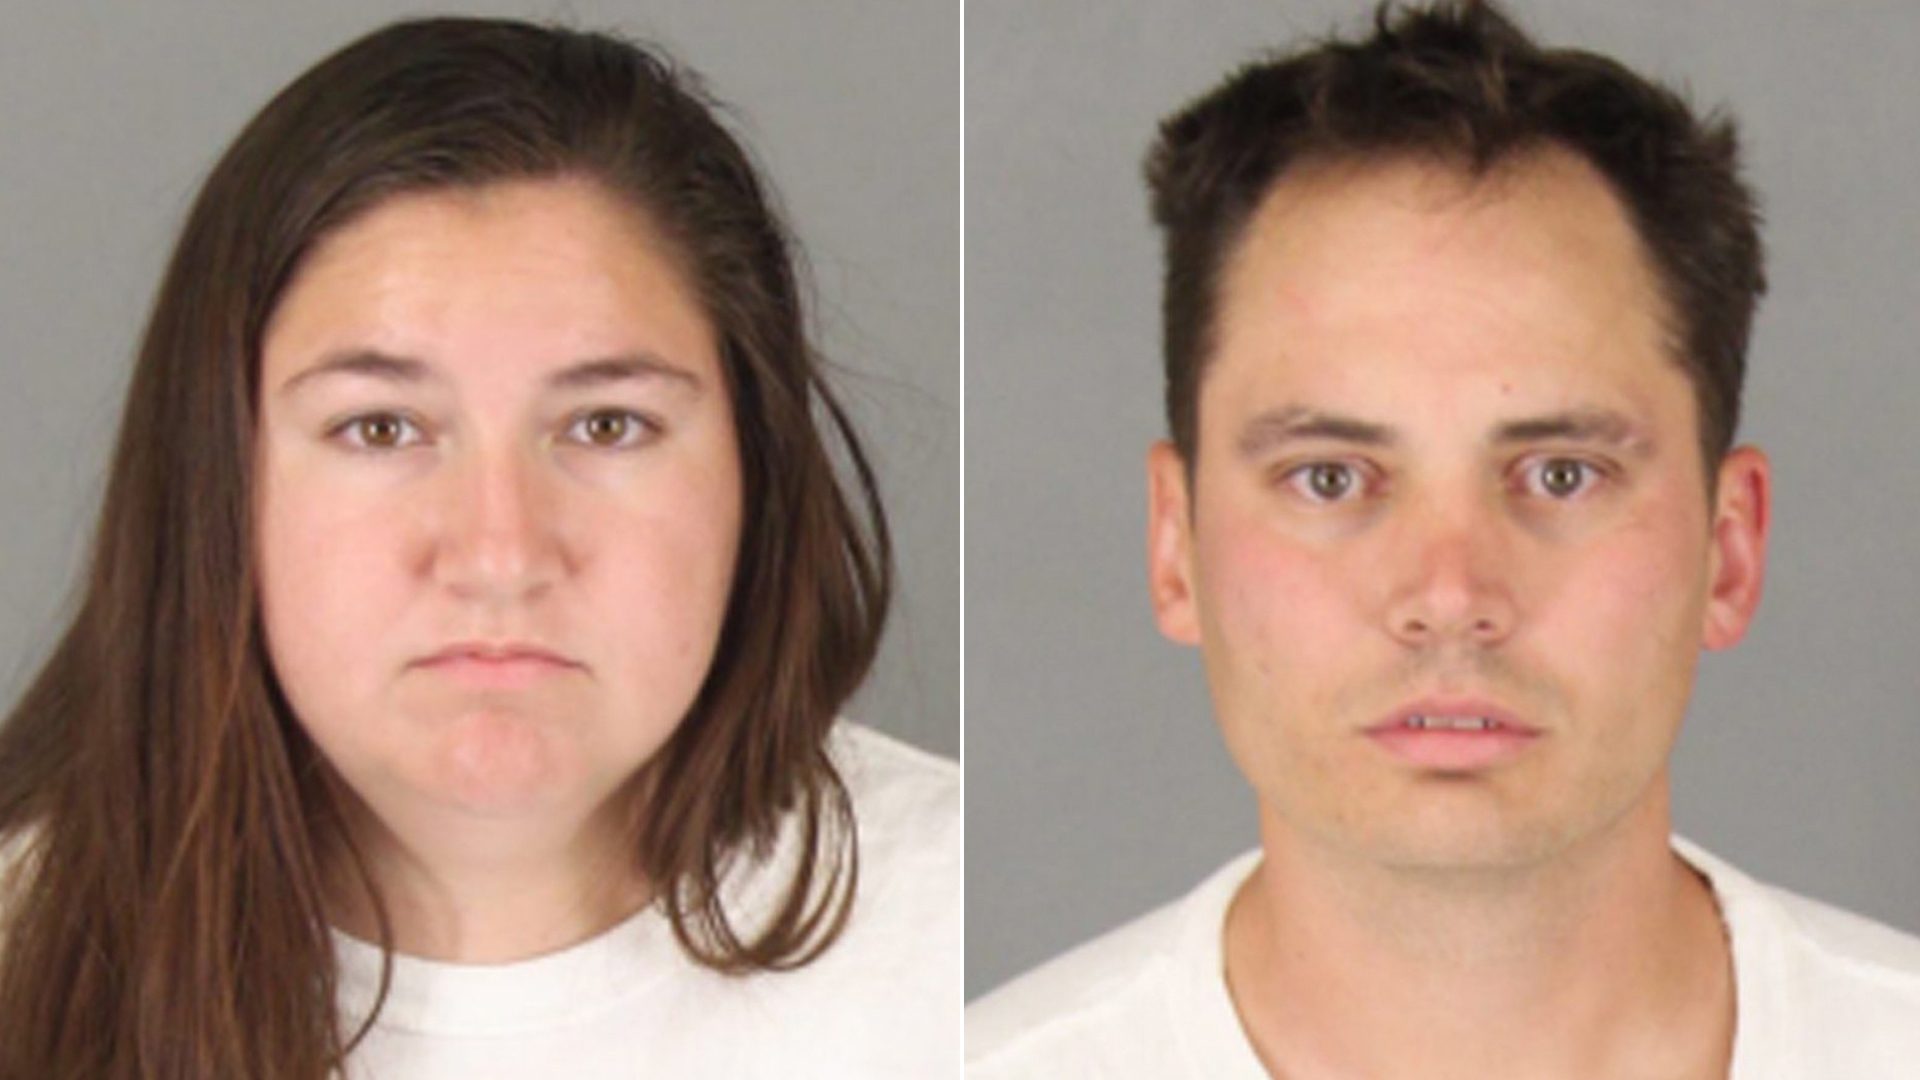 Jeryn Johnson, left, and Benjamin Whitten, right, are seen in booking photos released by Murrieta police.